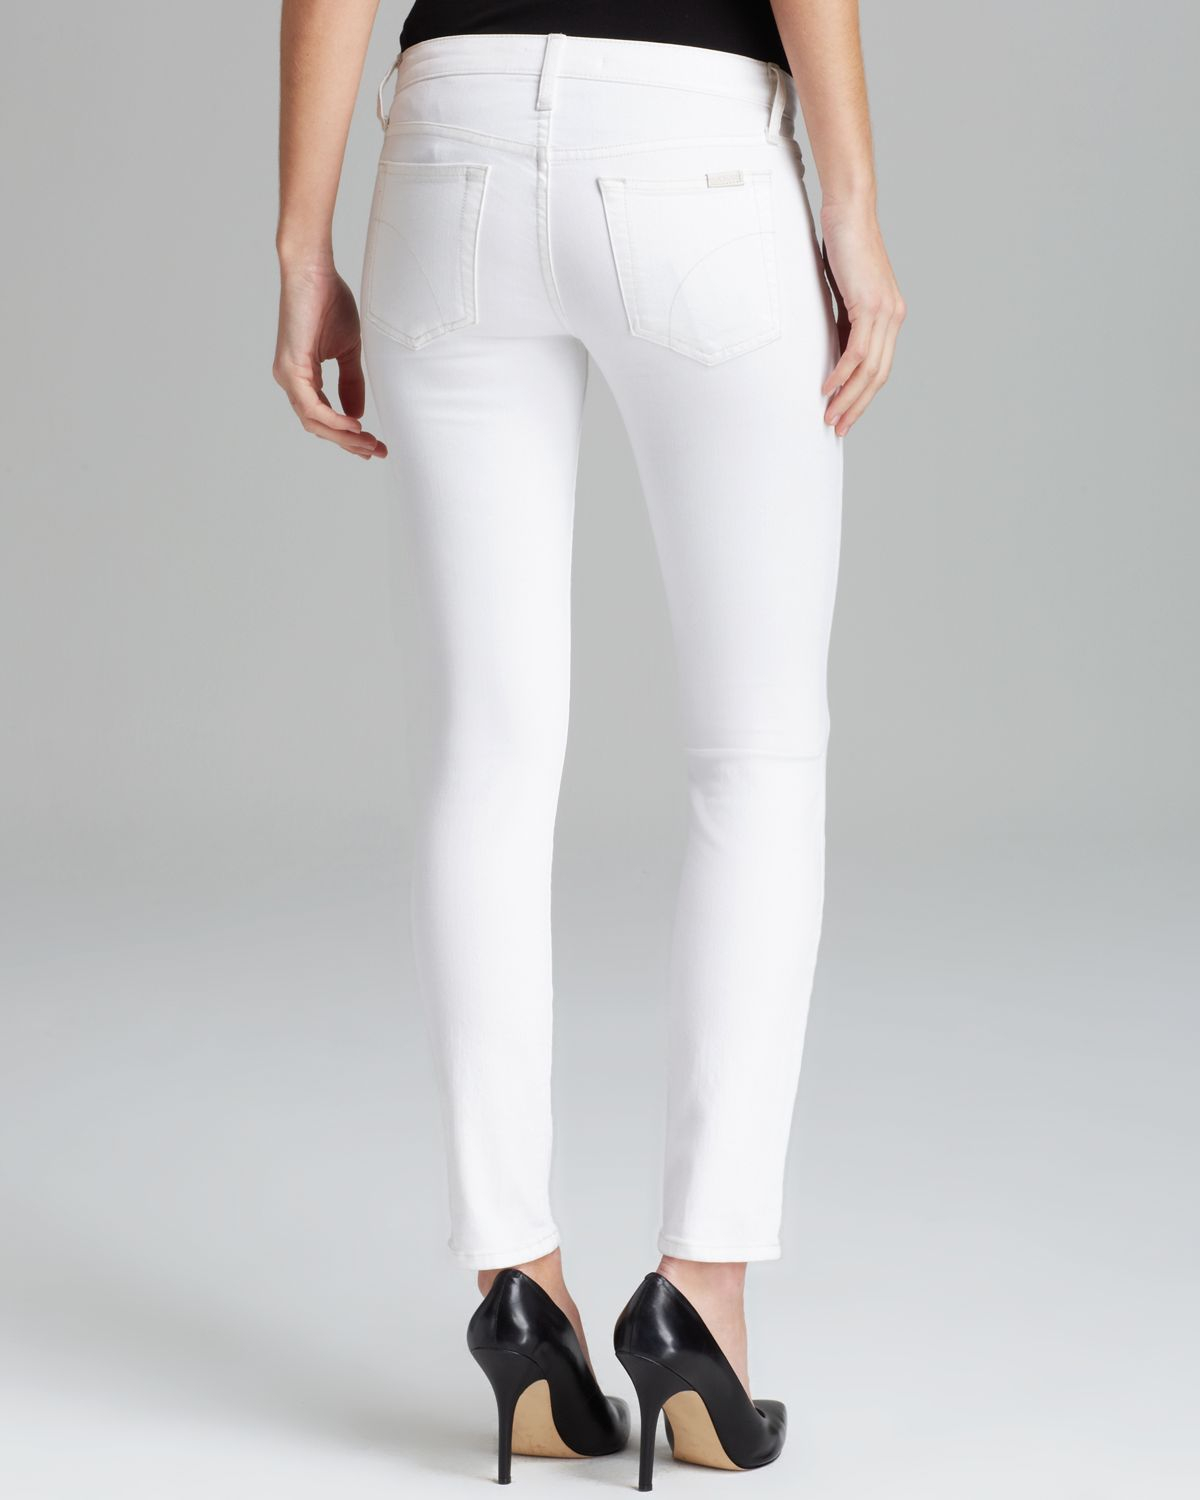 Joe's jeans Pennie Skinny Ankle in Optic White in White | Lyst